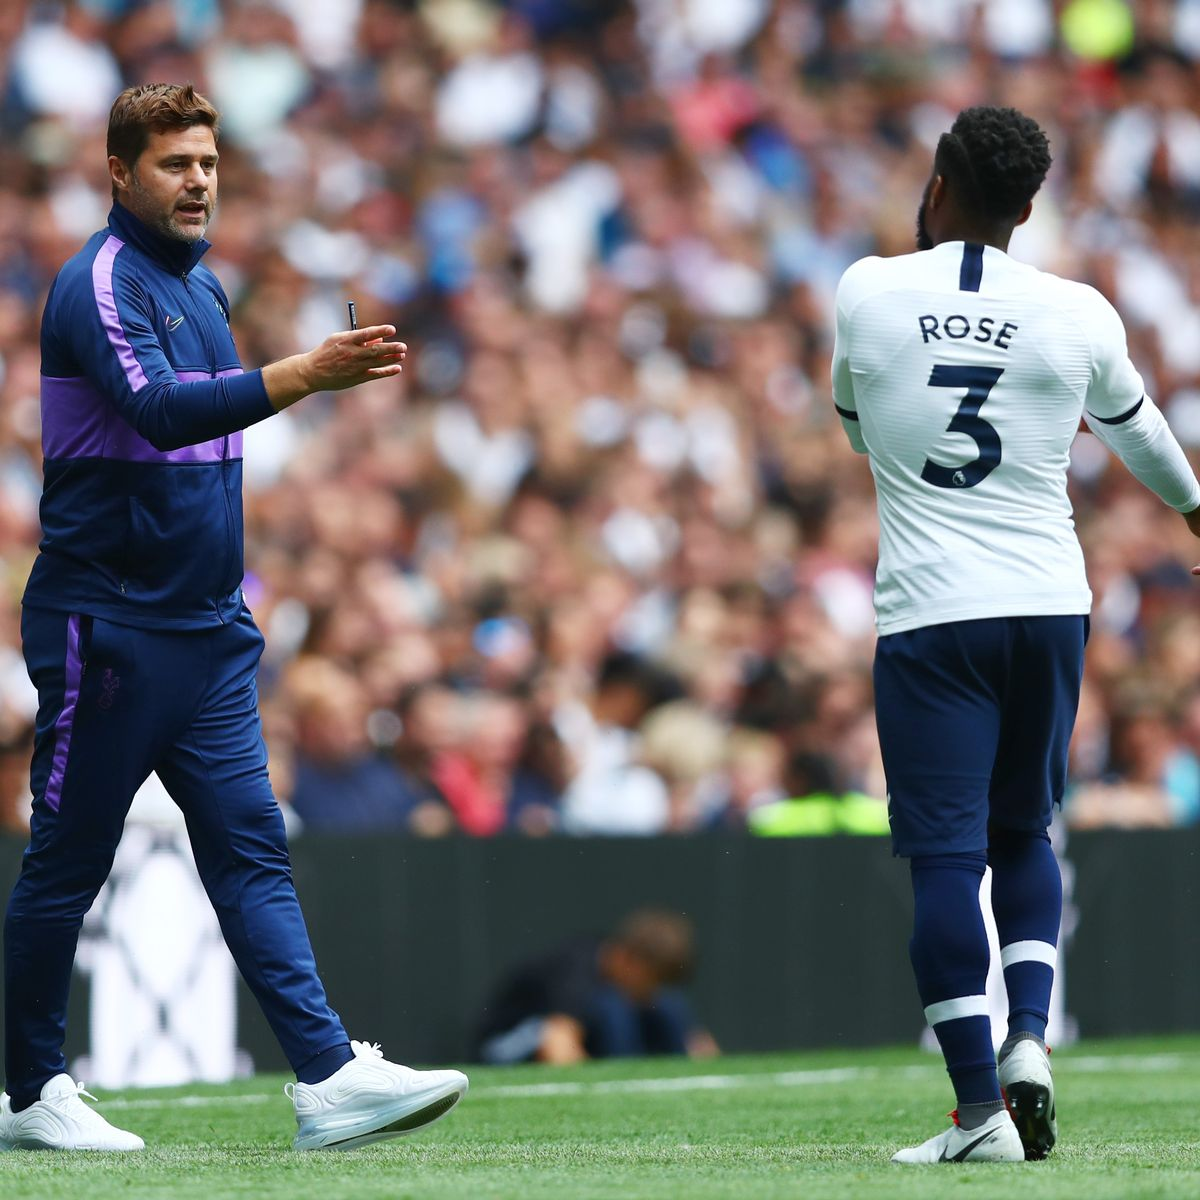 Danny Rose believes Mauricio Pochettino to take over at Manchester United